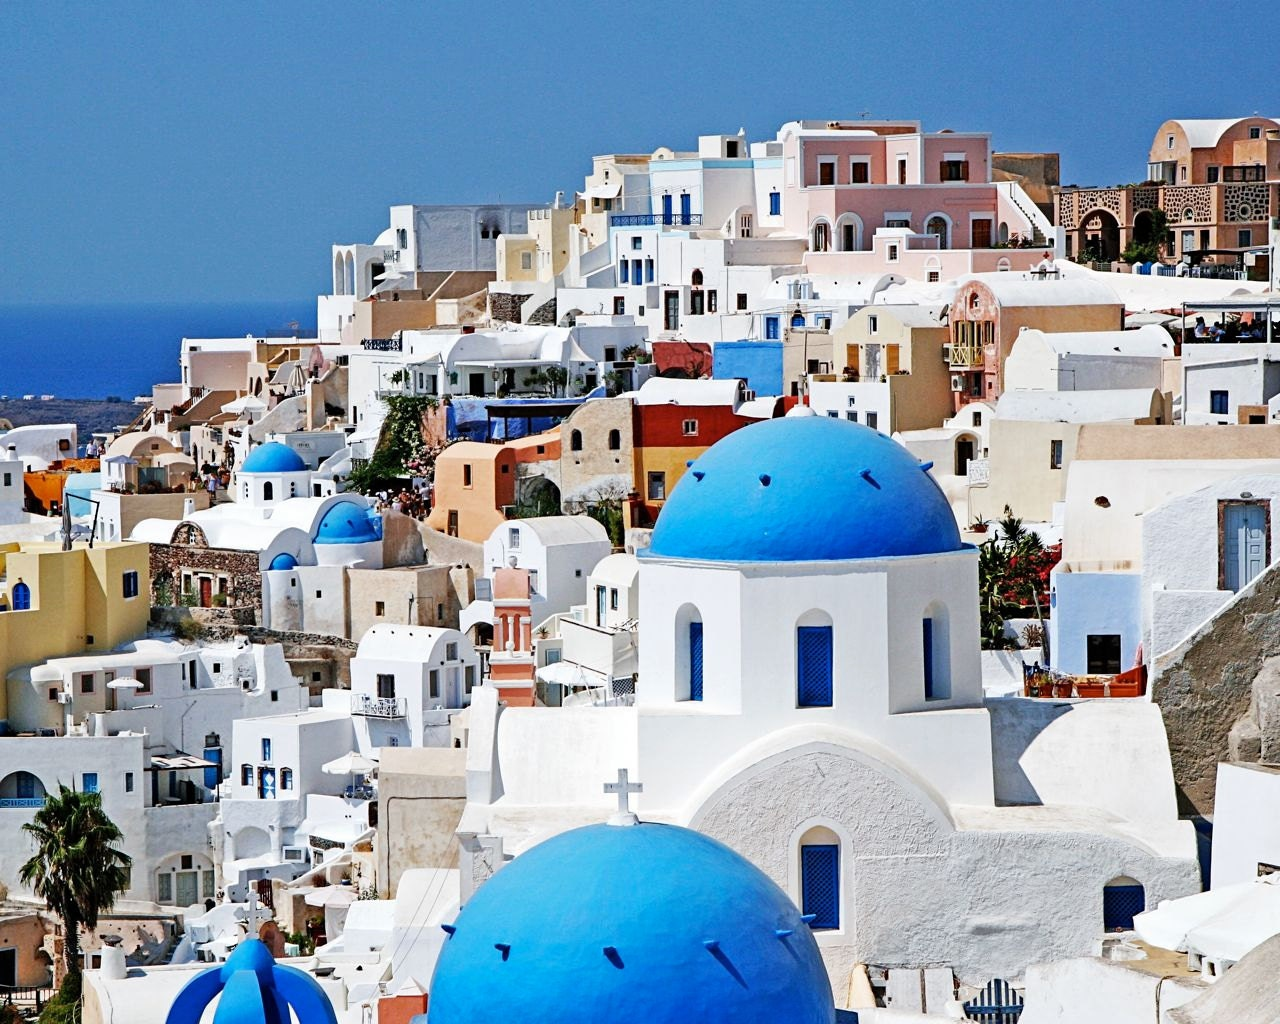 Santorini Greece Photography Travel Photography Cobalt Blue Domes White Church Photo Greek Islands Picture